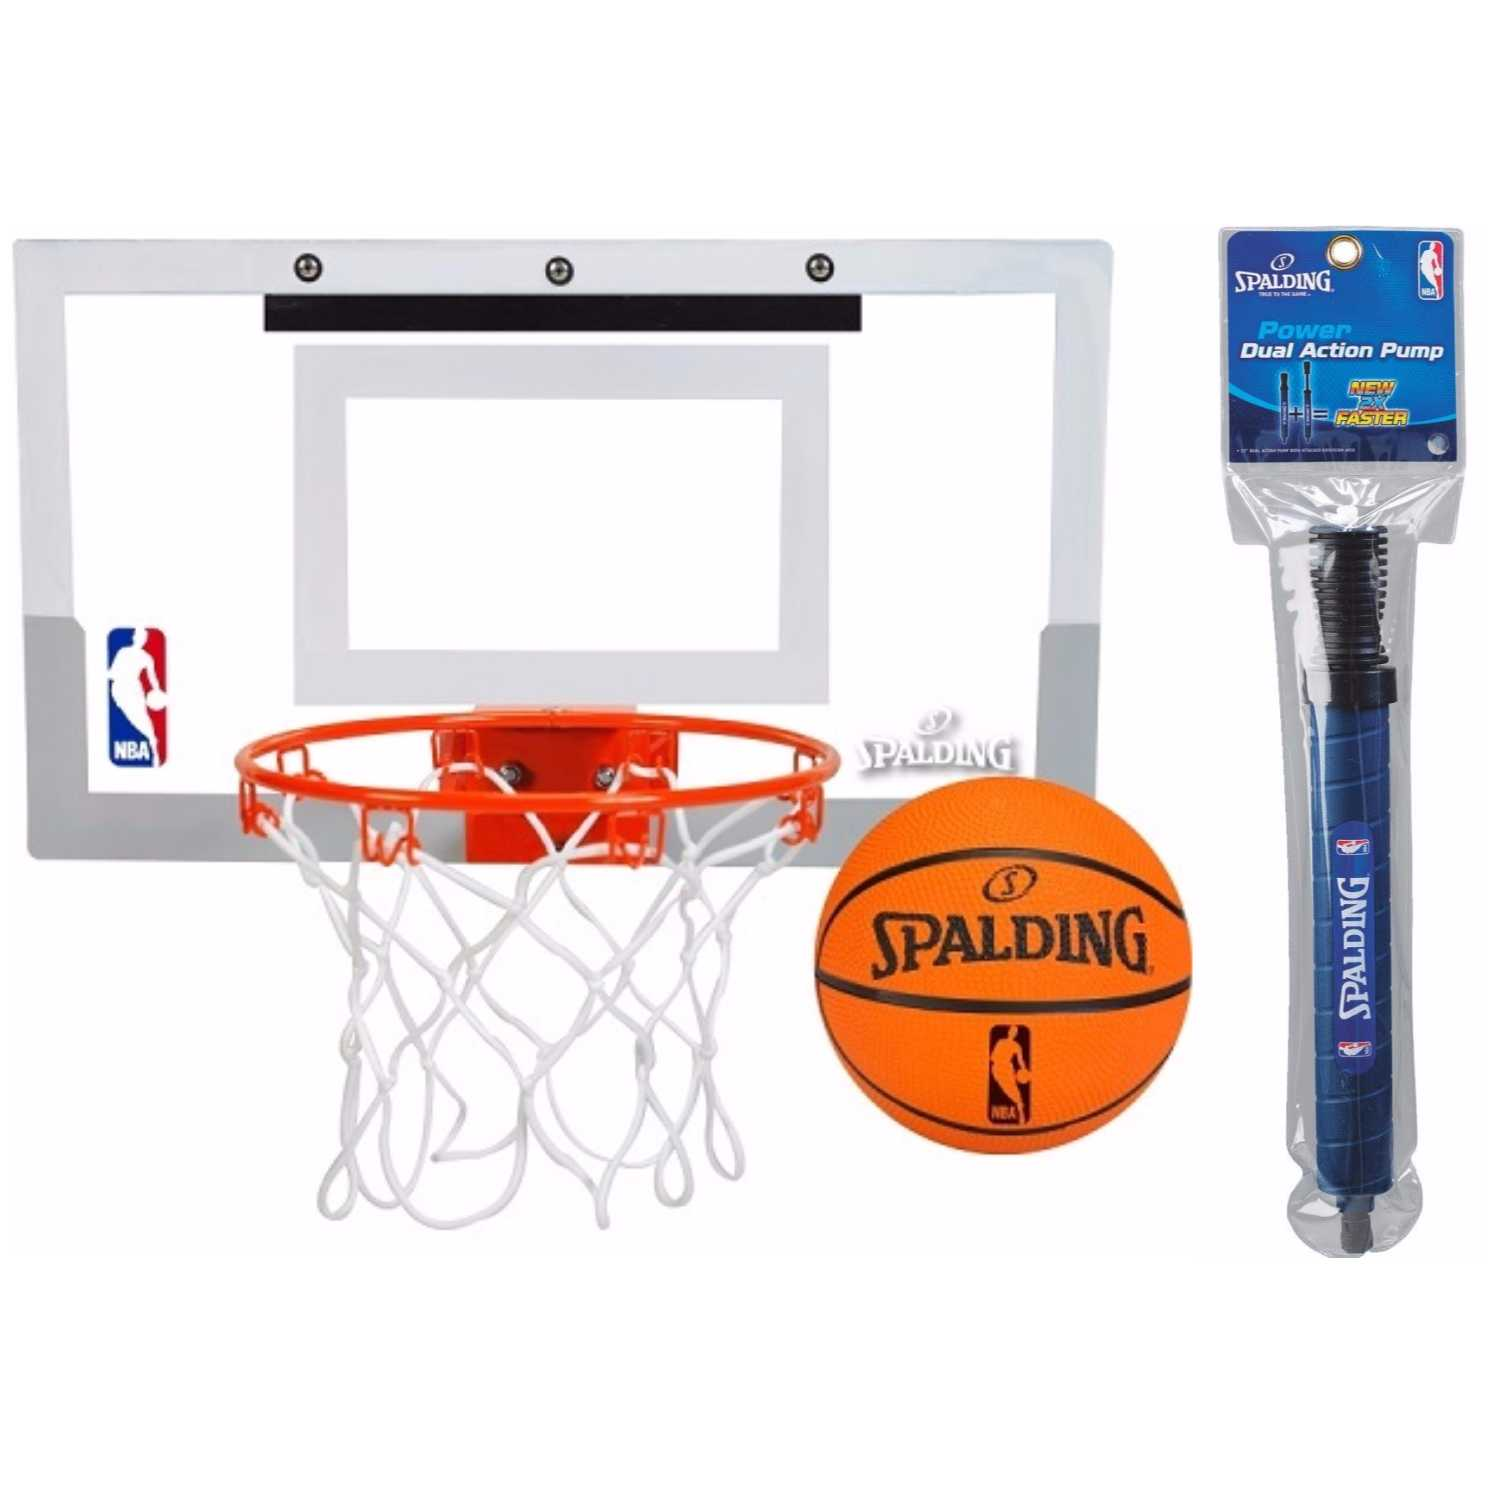 "Spalding NBA Slam Jam Over-The-Door Mini Basketball Hoop Set and 12"" pump bundle"